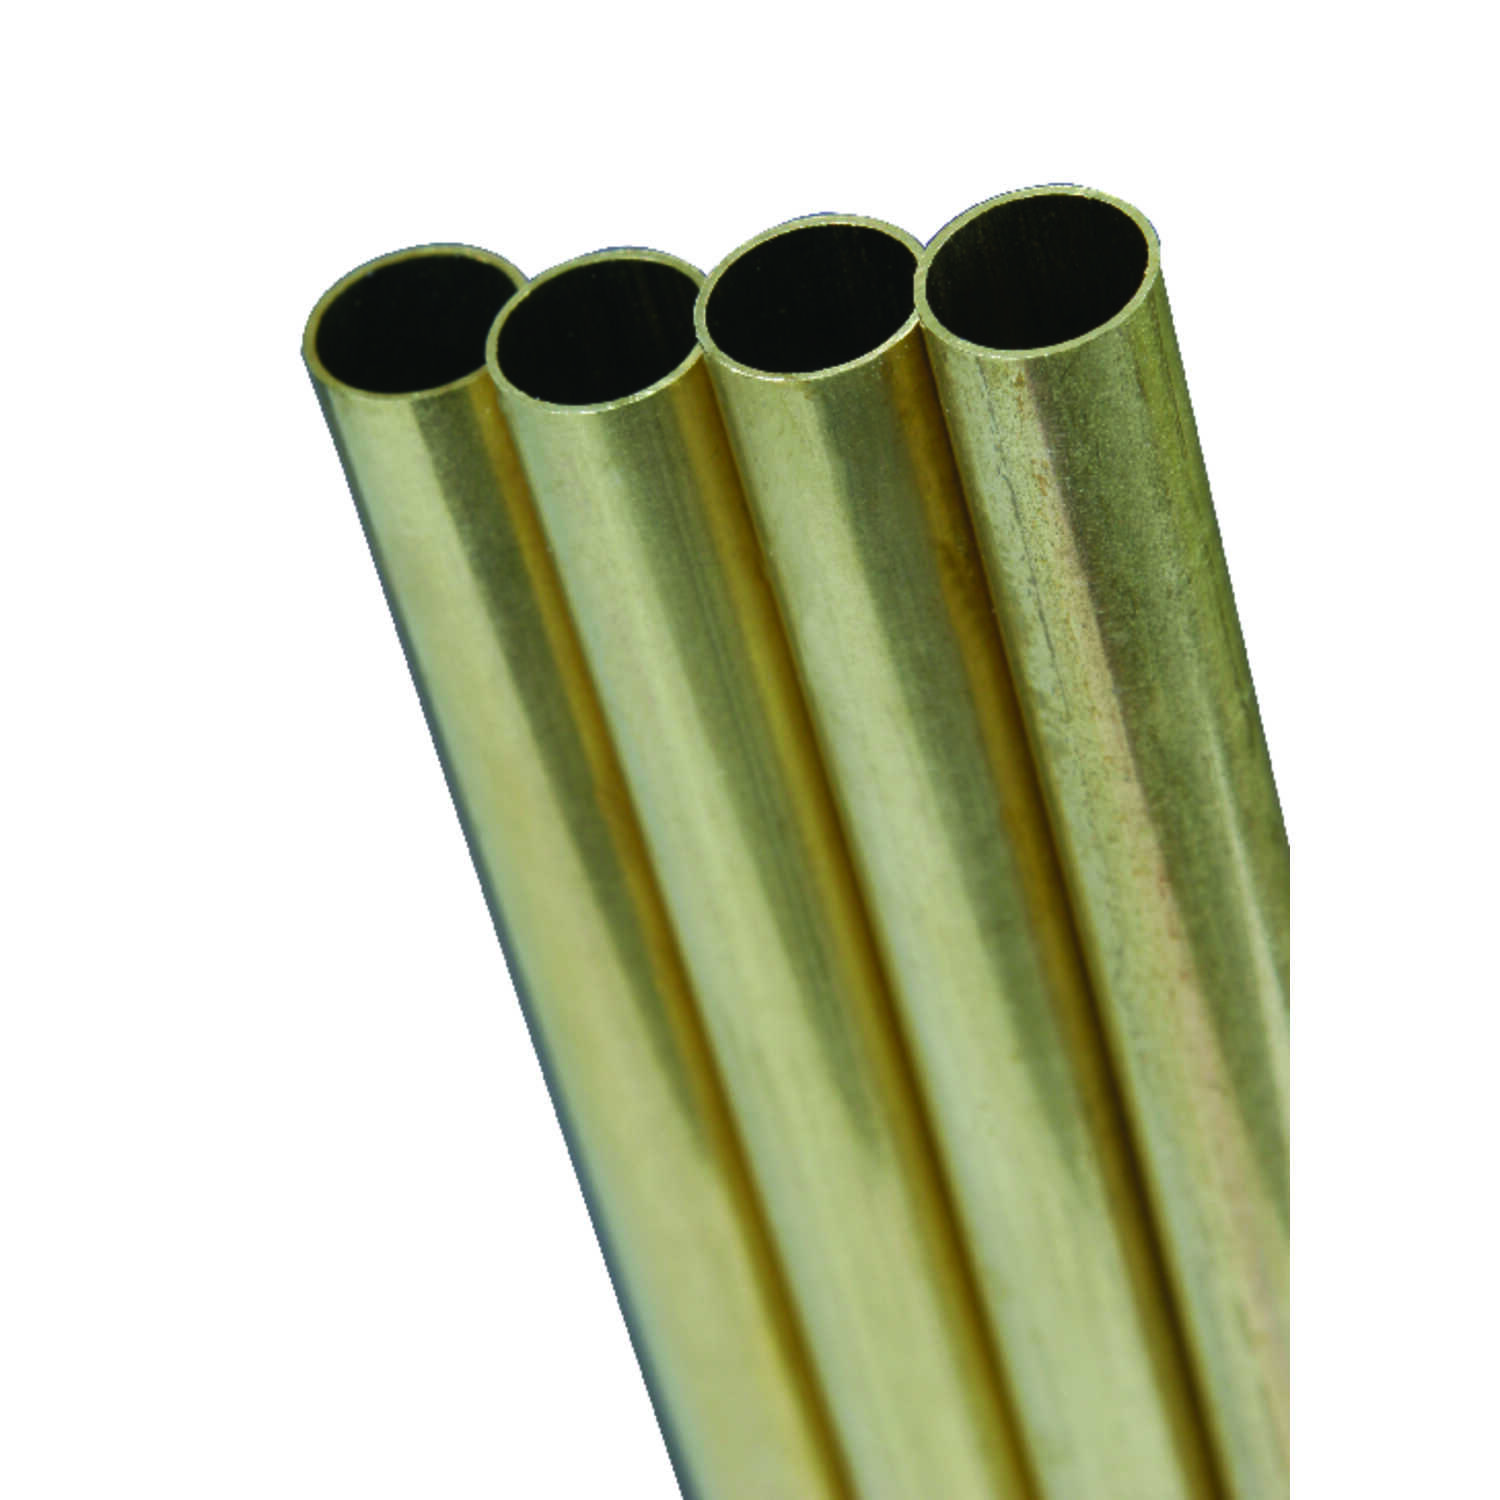 K&S  11/32 in. Dia. x 12 in. L Round  Brass Tube  1